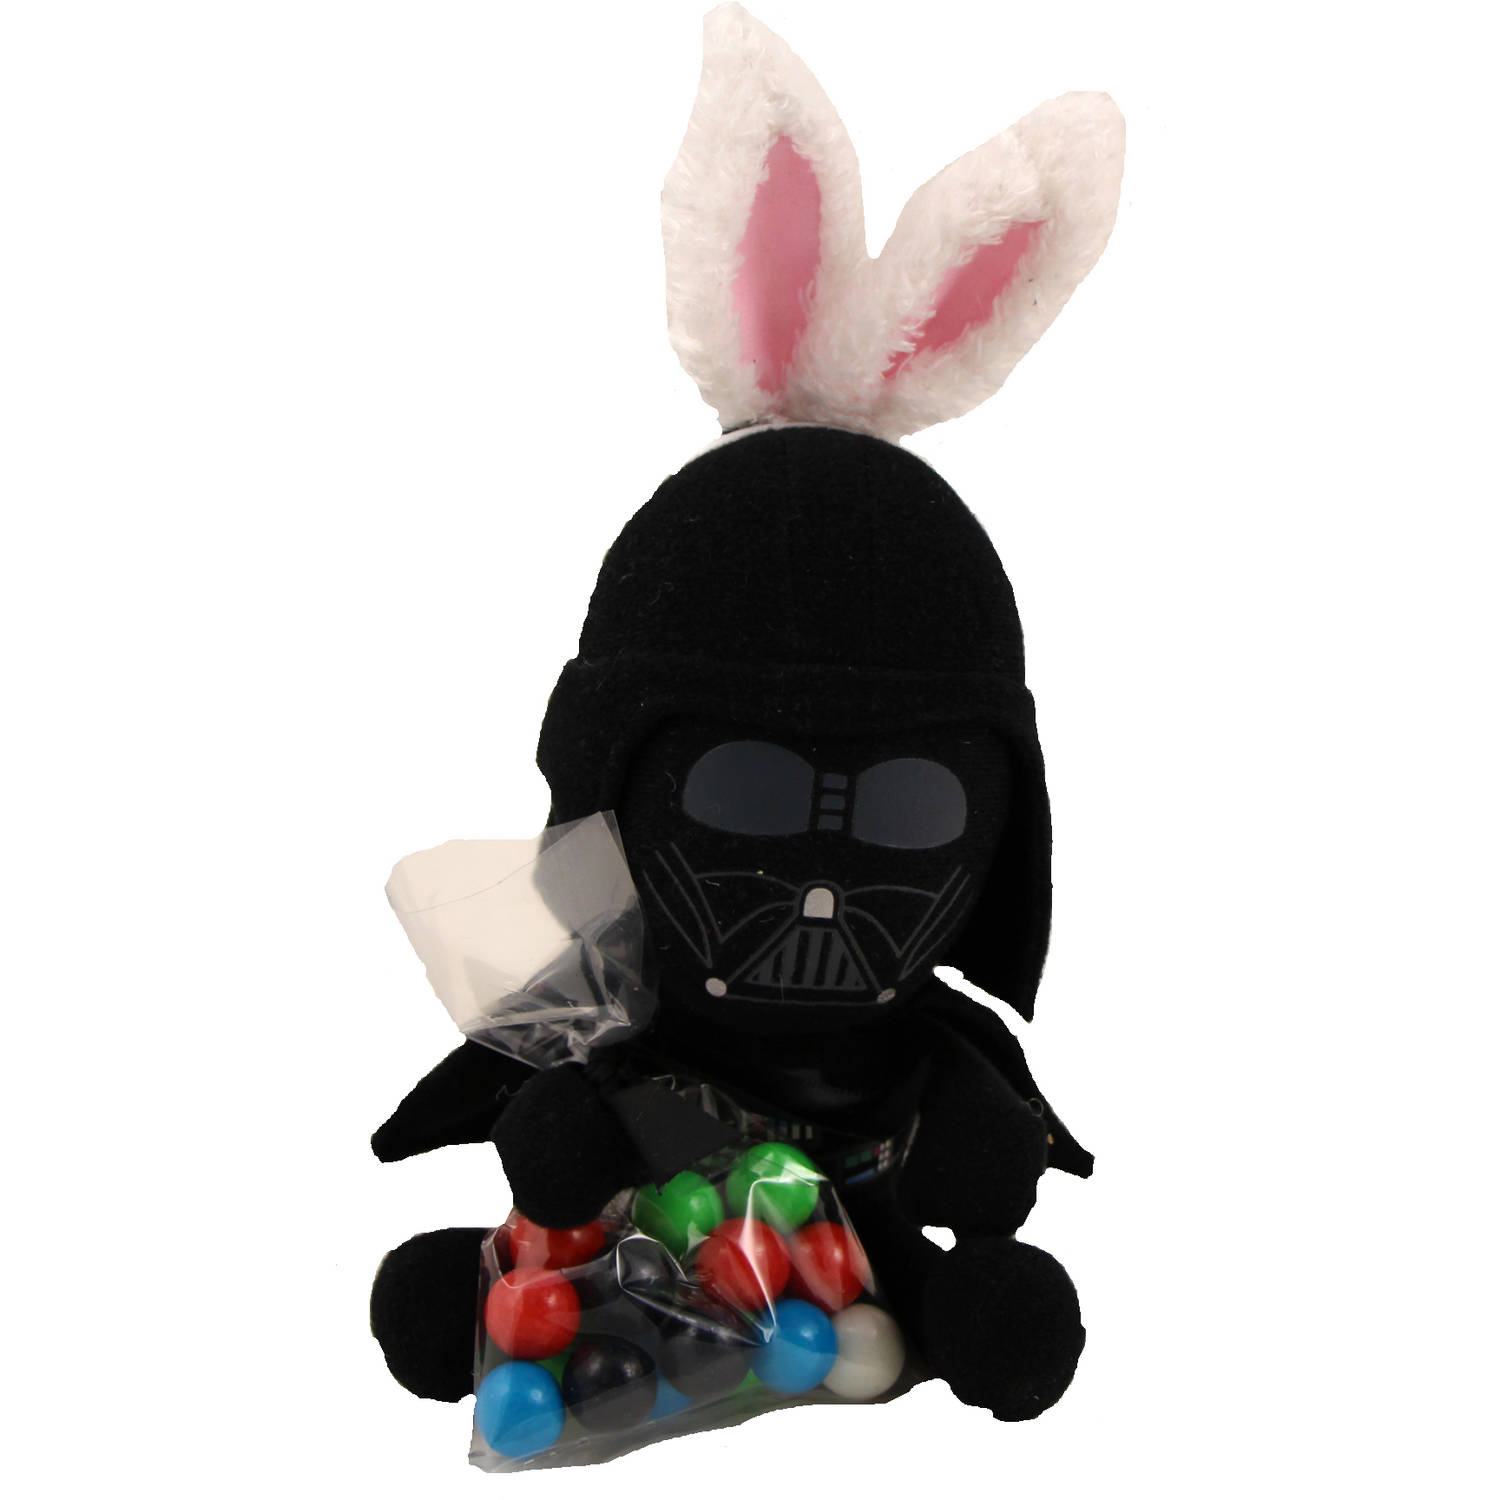 Star Wars Plush with Bunny Ears & Candy Easter Gift Set, 0.9 oz